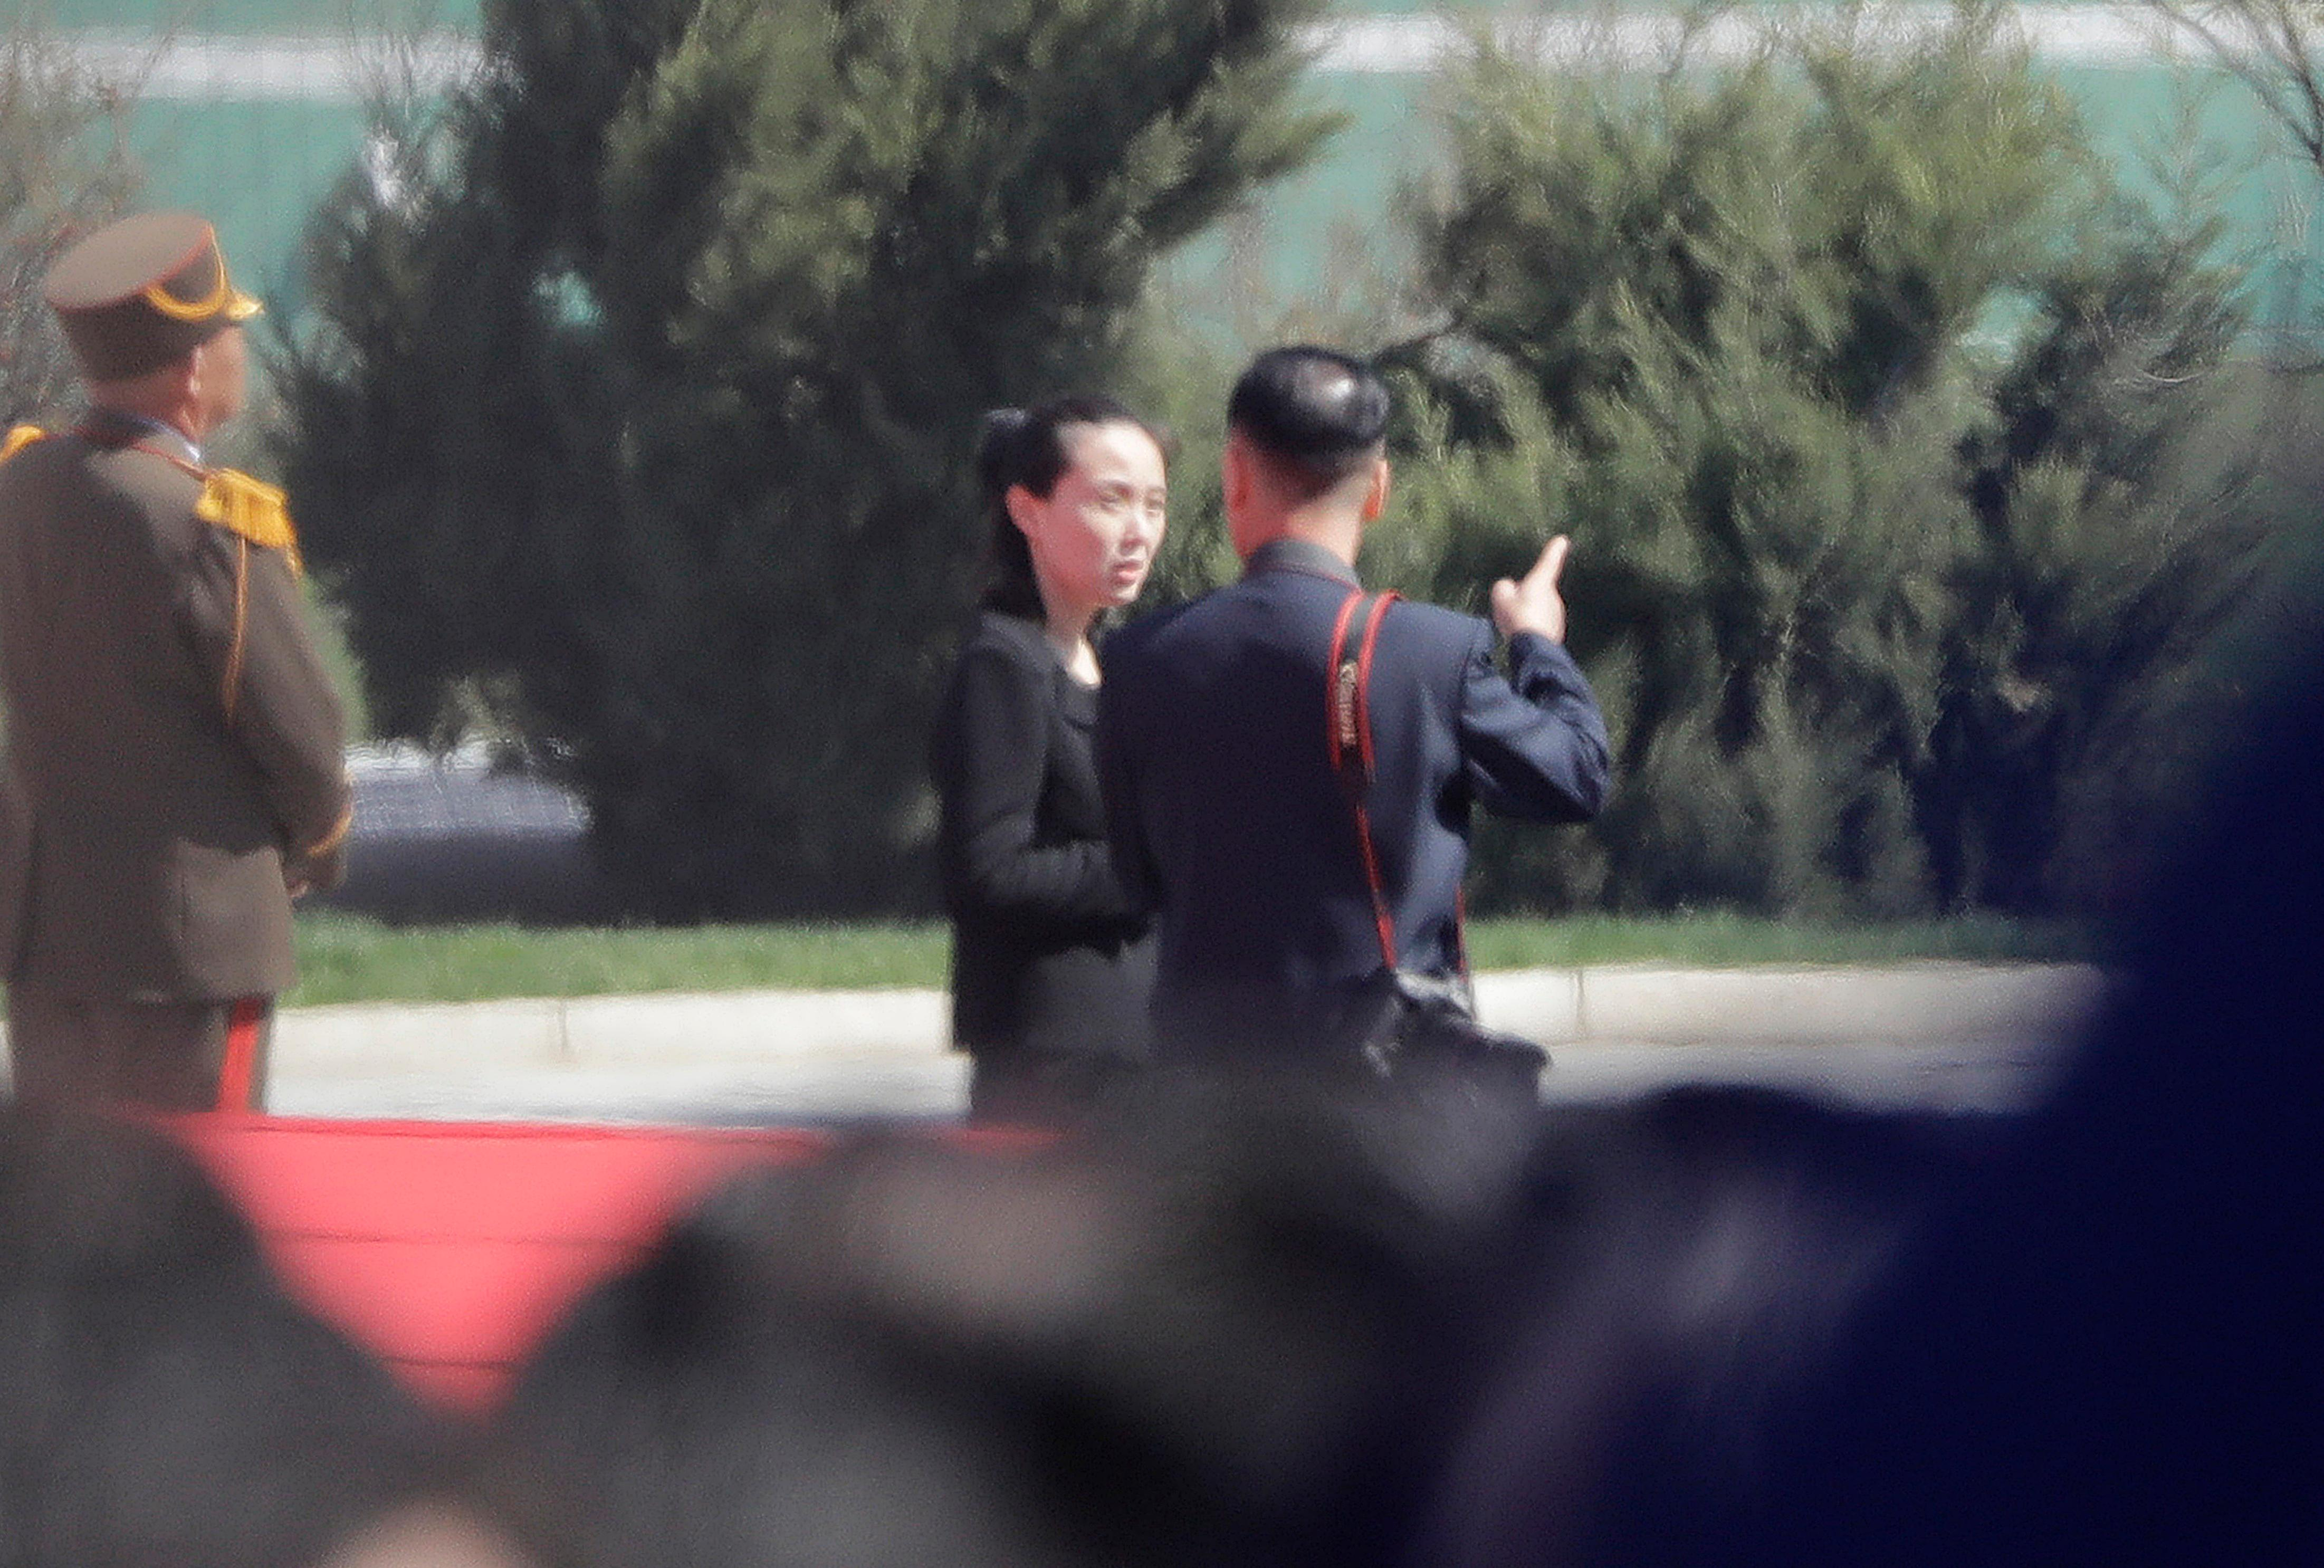 In this April 13, 2017, photo, Kim Yo Jong, center, sister of North Korean leader Kim Jong Un, is pictured during the official opening of the Ryomyong residential area, a collection of more than a dozen apartment buildings, in Pyongyang, North Korea. South Korea's Unification Ministry said North Korea informed Wednesday, Feb. 7, 2018, that Kim Yo Jong would be part of the high-level delegation coming to the South for the Pyeongchang Winter Olympics. (AP Photo/Wong Maye-E)